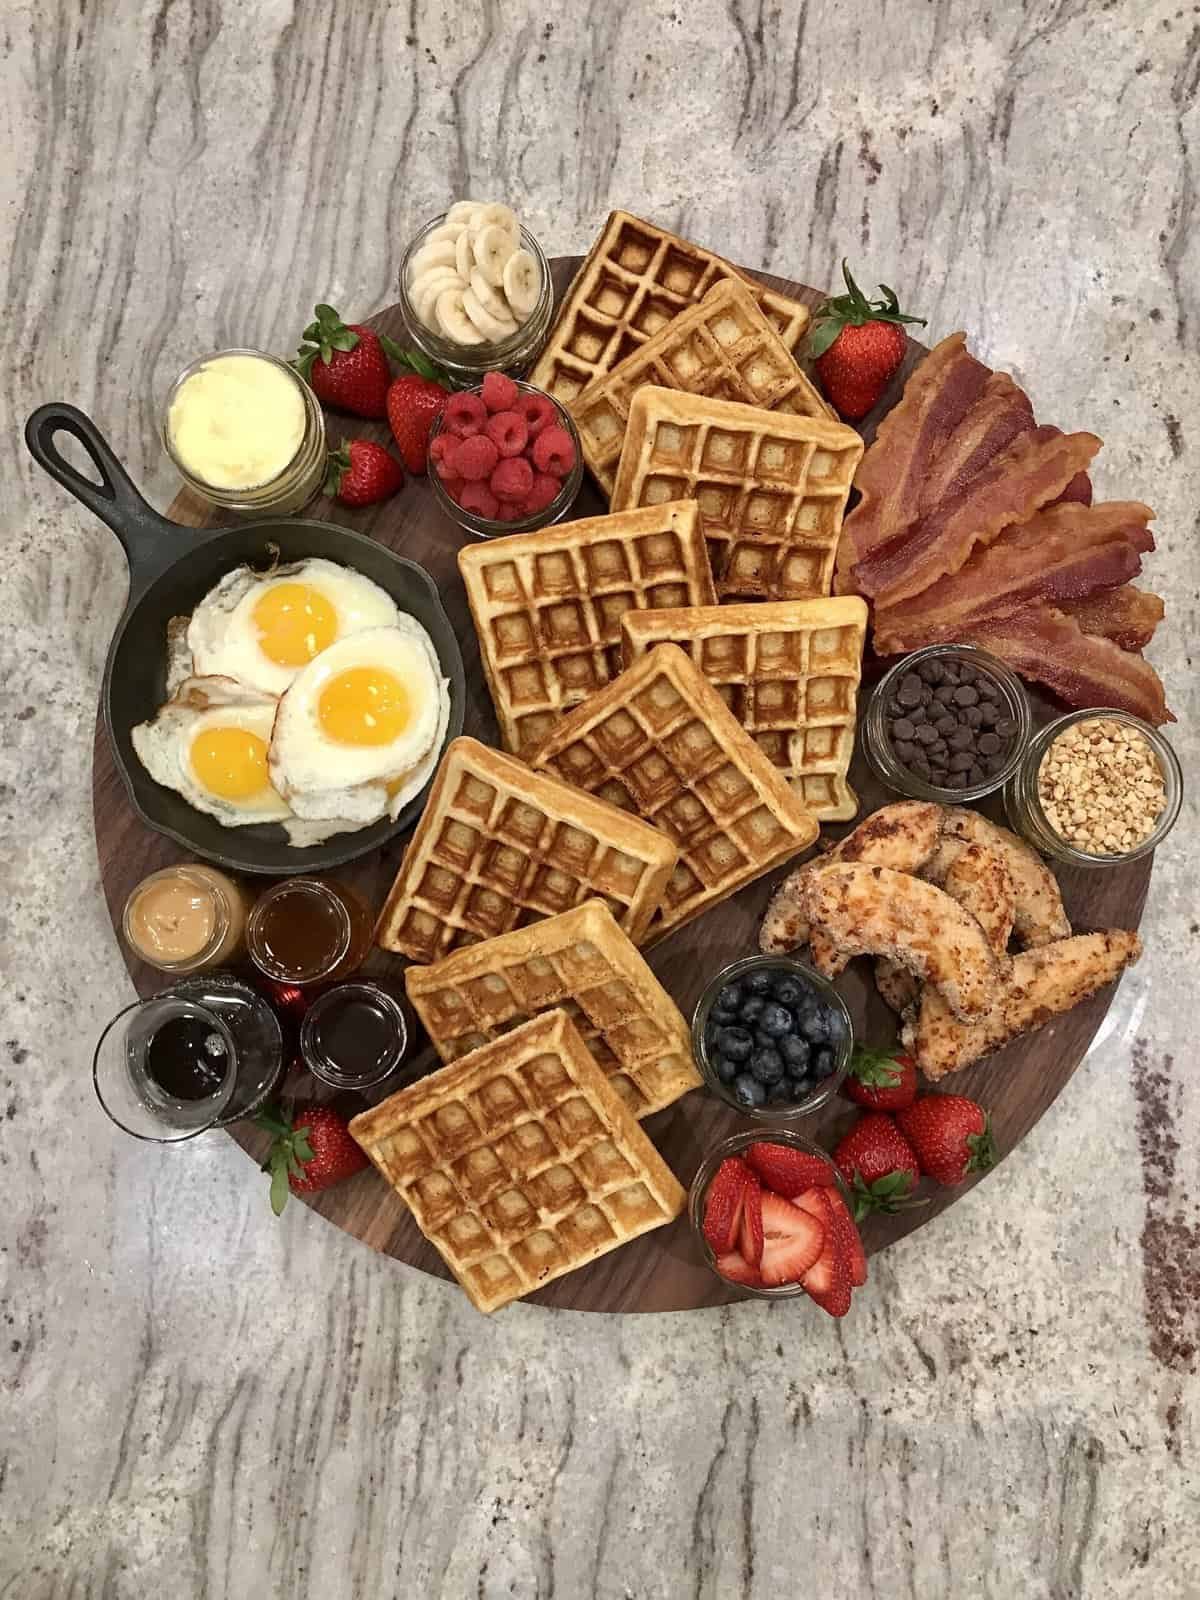 Build-Your-Own Waffle Board by The BakerMama